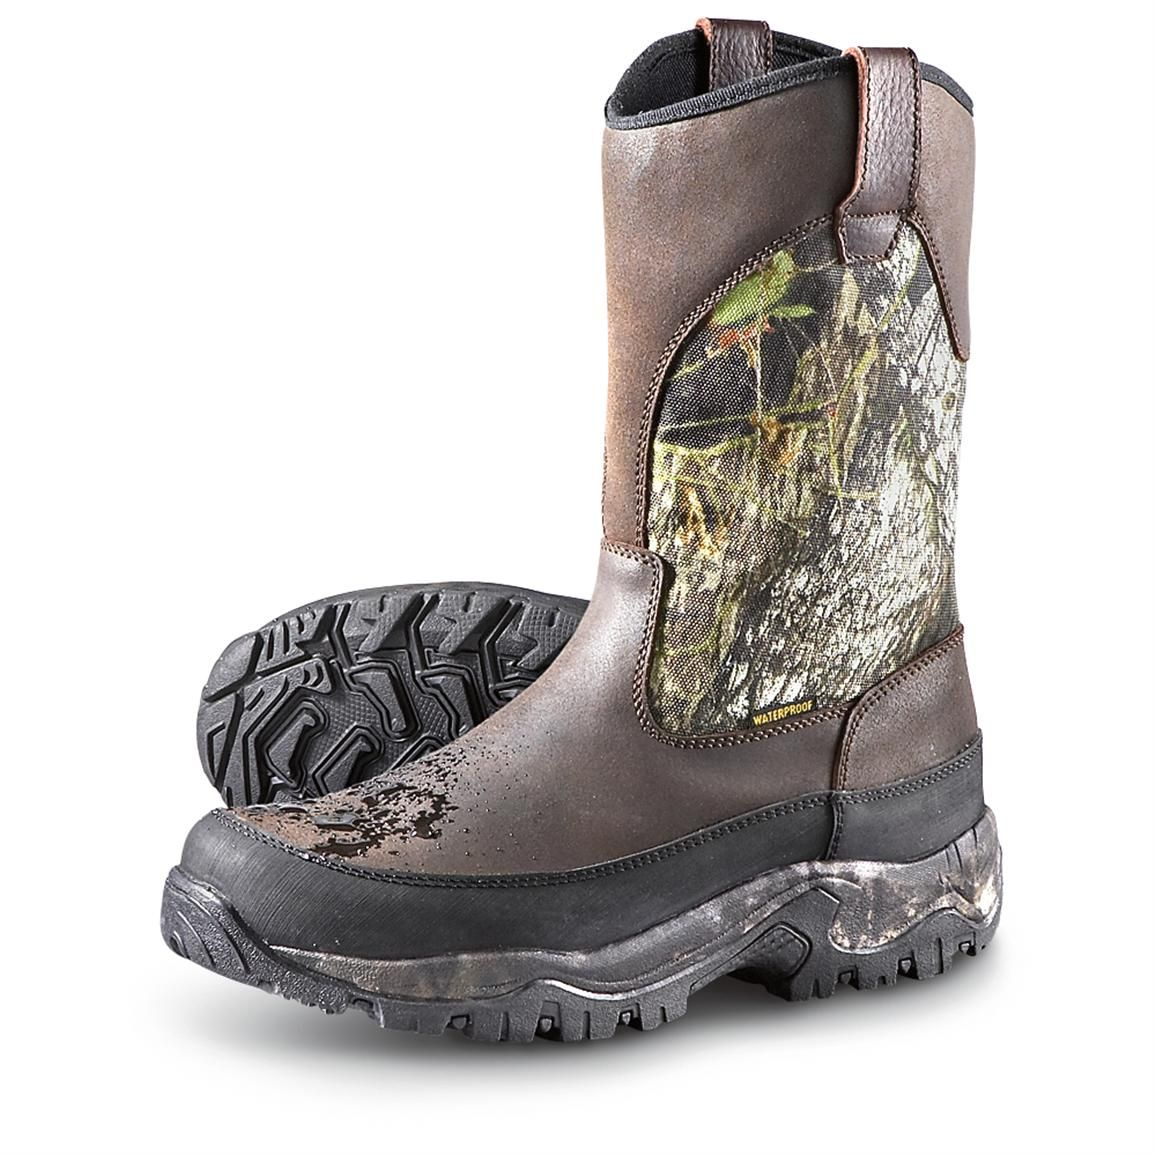 Guide Gear Men's Hunting Pull-On Boots, 1,000 Gram Thinsulate, Waterproof -  180121, Hunting Boots at Sportsman's Guide   Hunting boots, Boots, Pull on  boots